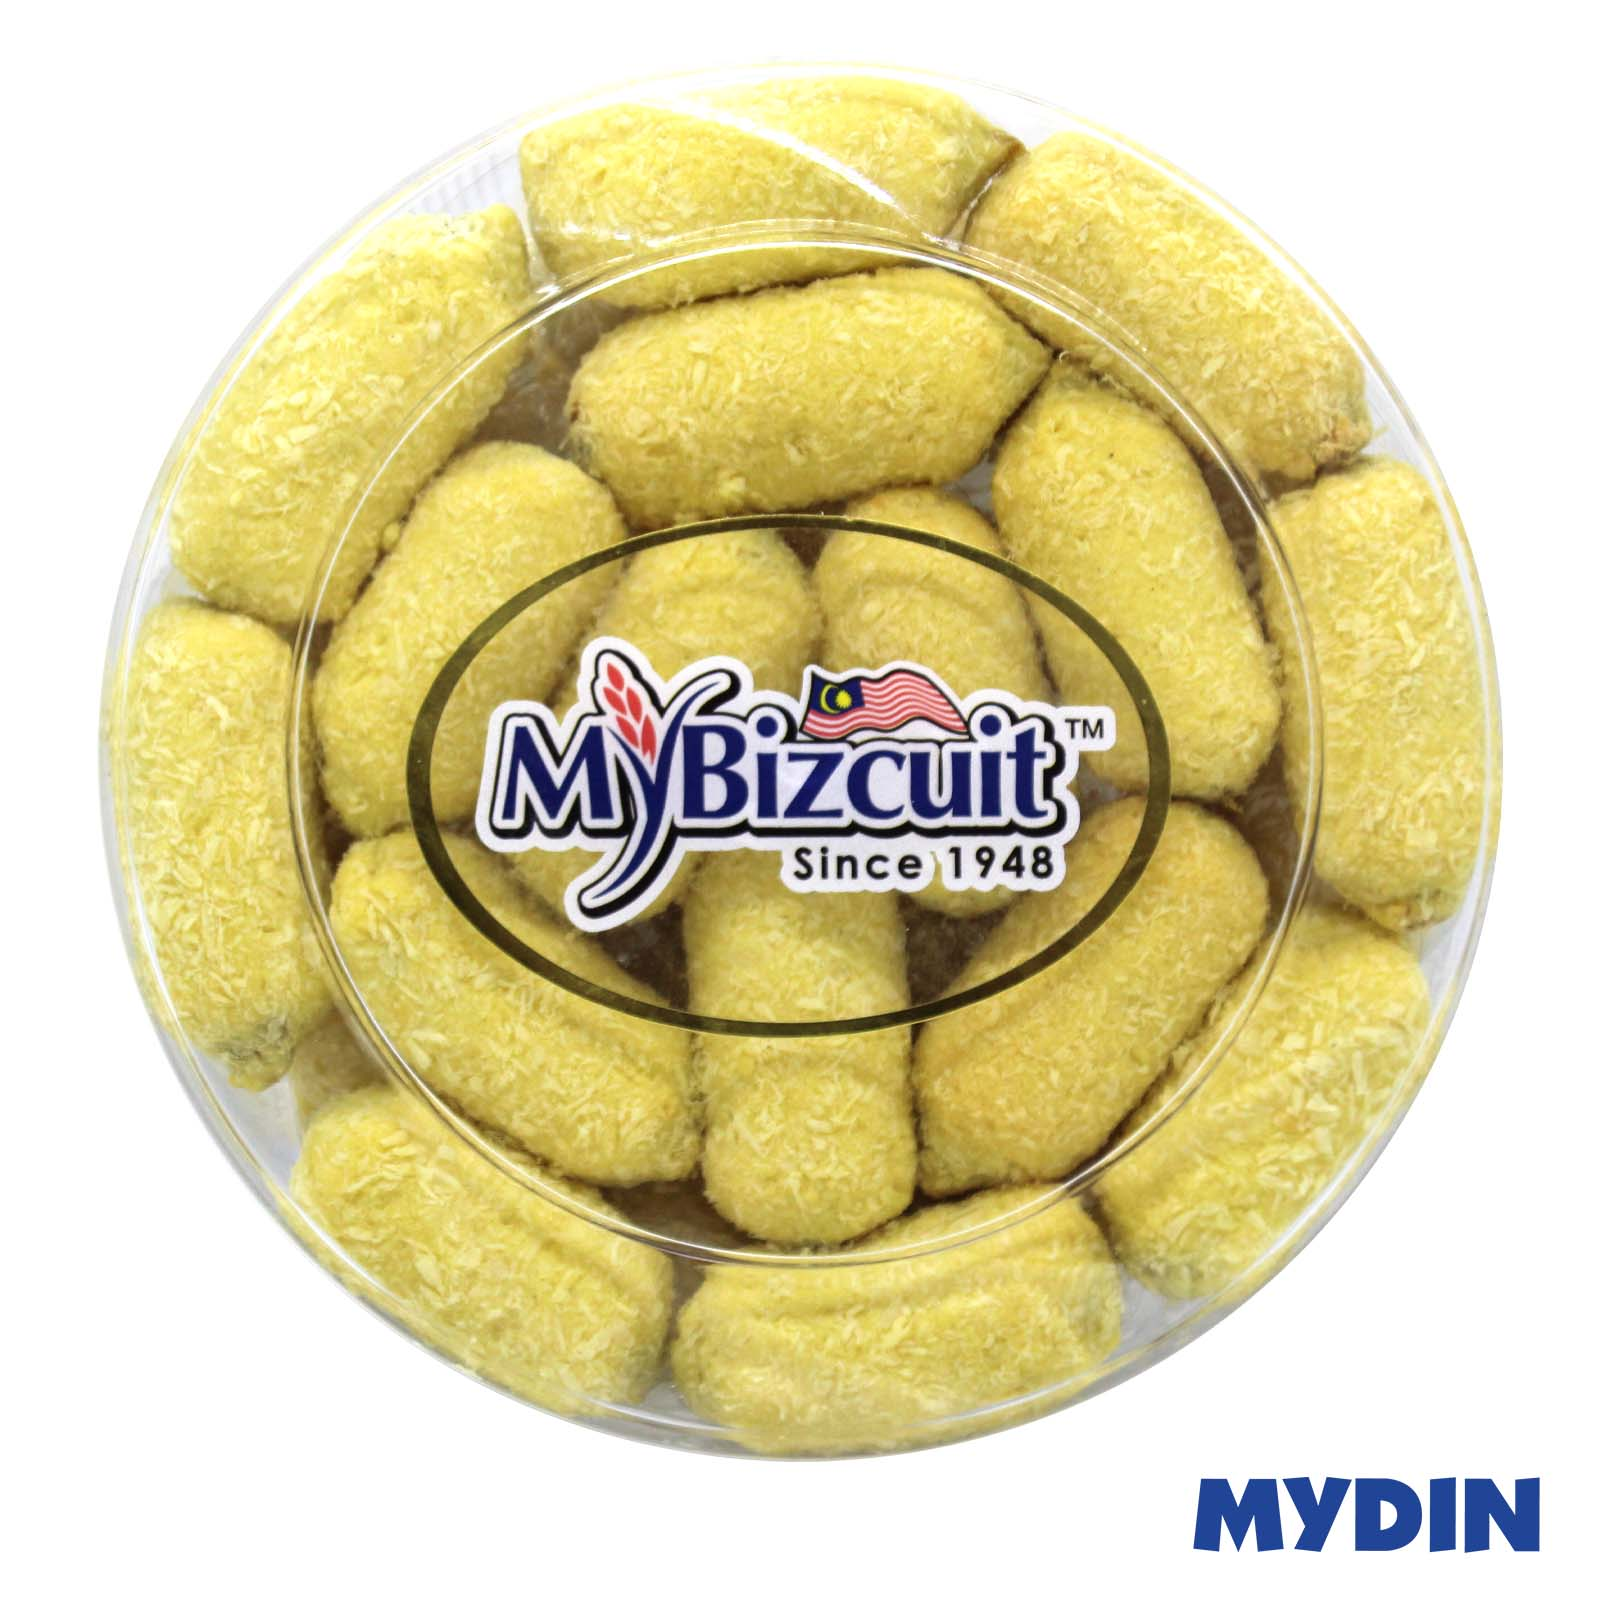 Mybiscuit Cookies Festival Blueberry Cheese Tart 400g